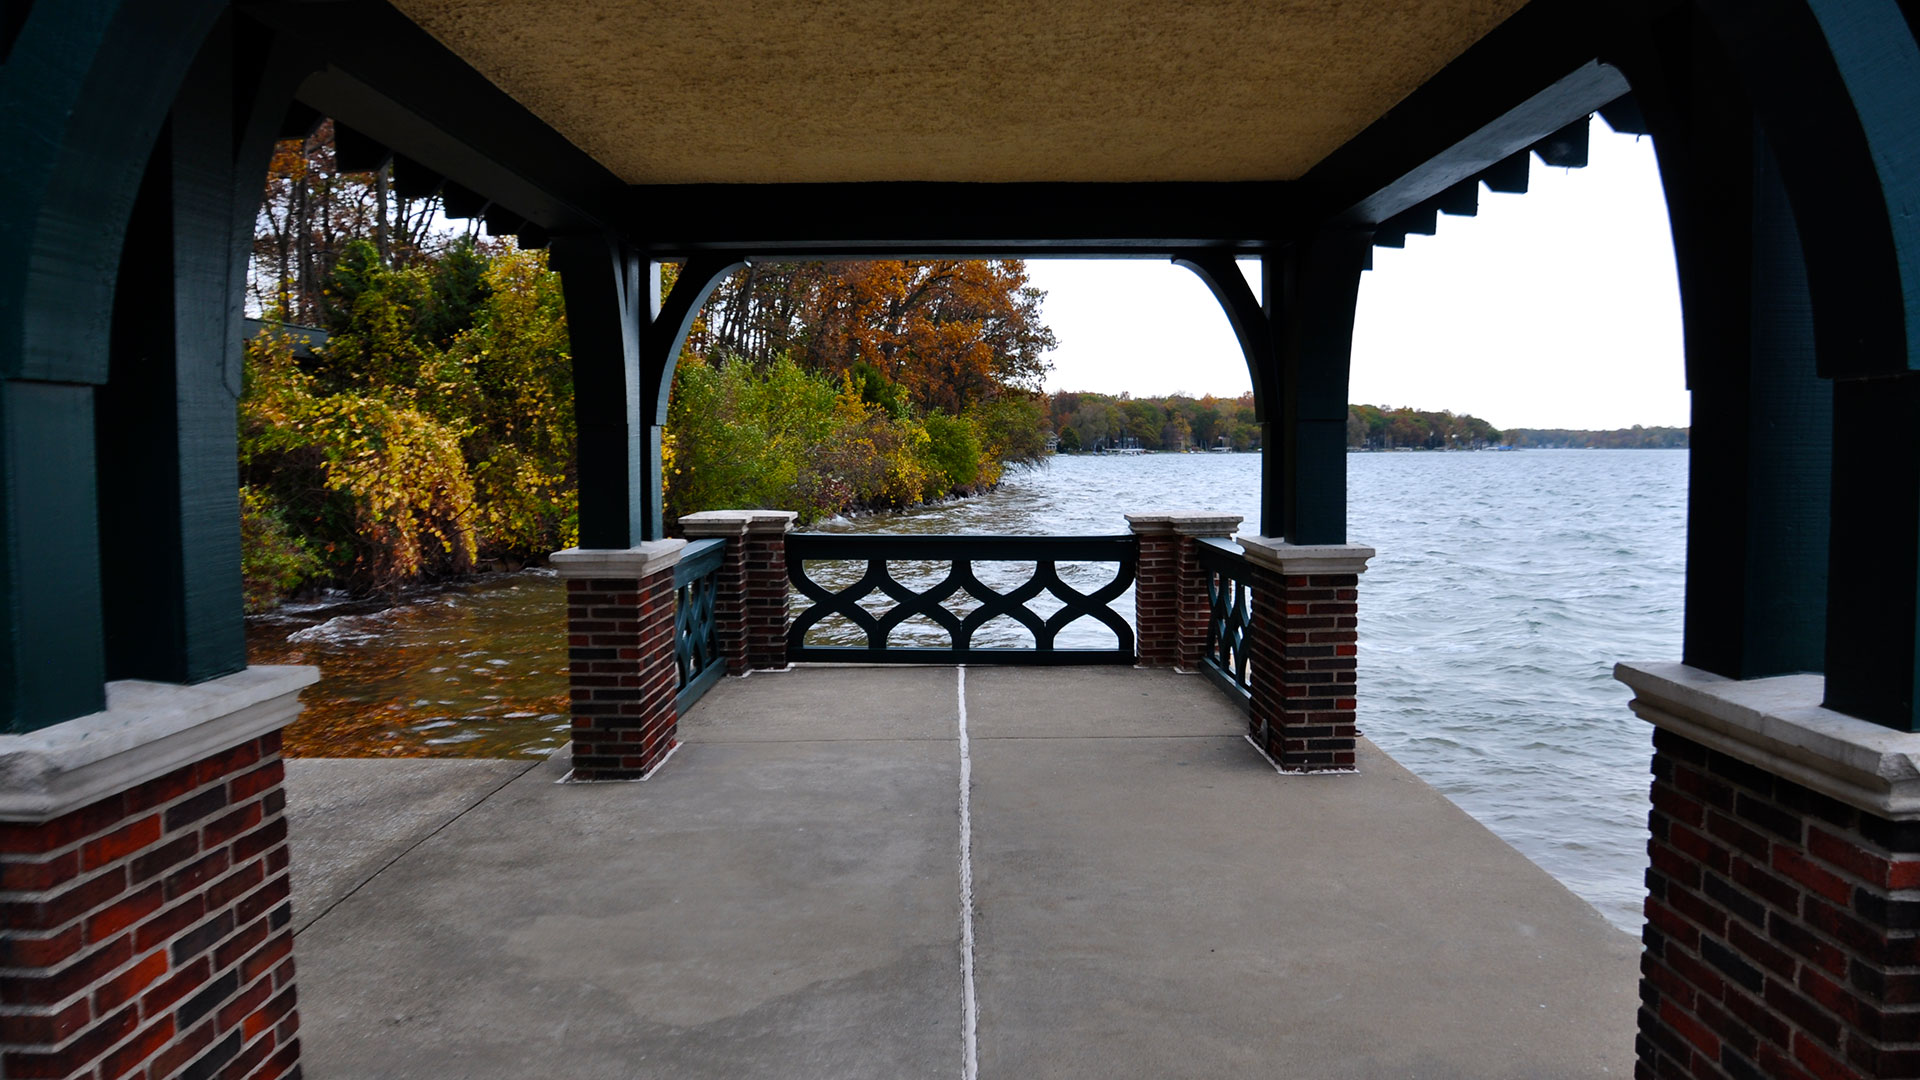 View of Gull Lake from under the Manor House pagoda.